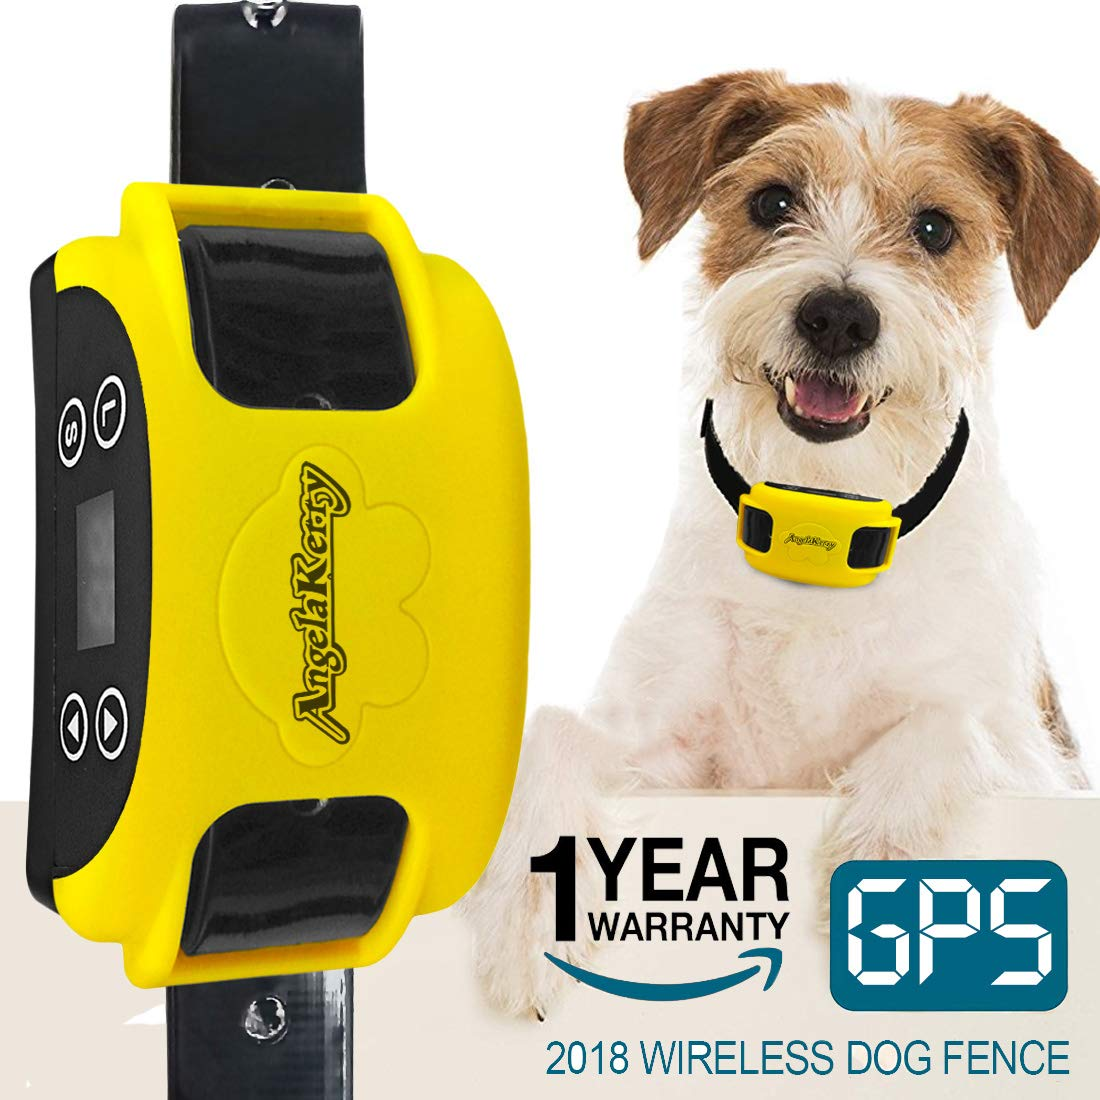 AngelaKerry Wireless Dog Fence System with GPS, Outdoor Invisible Pet Containment System Rechargeable Waterproof Collar 850YD Remote for 15lbs-120lbs Dogs (1pc GPS Receiver by 1 Dog)